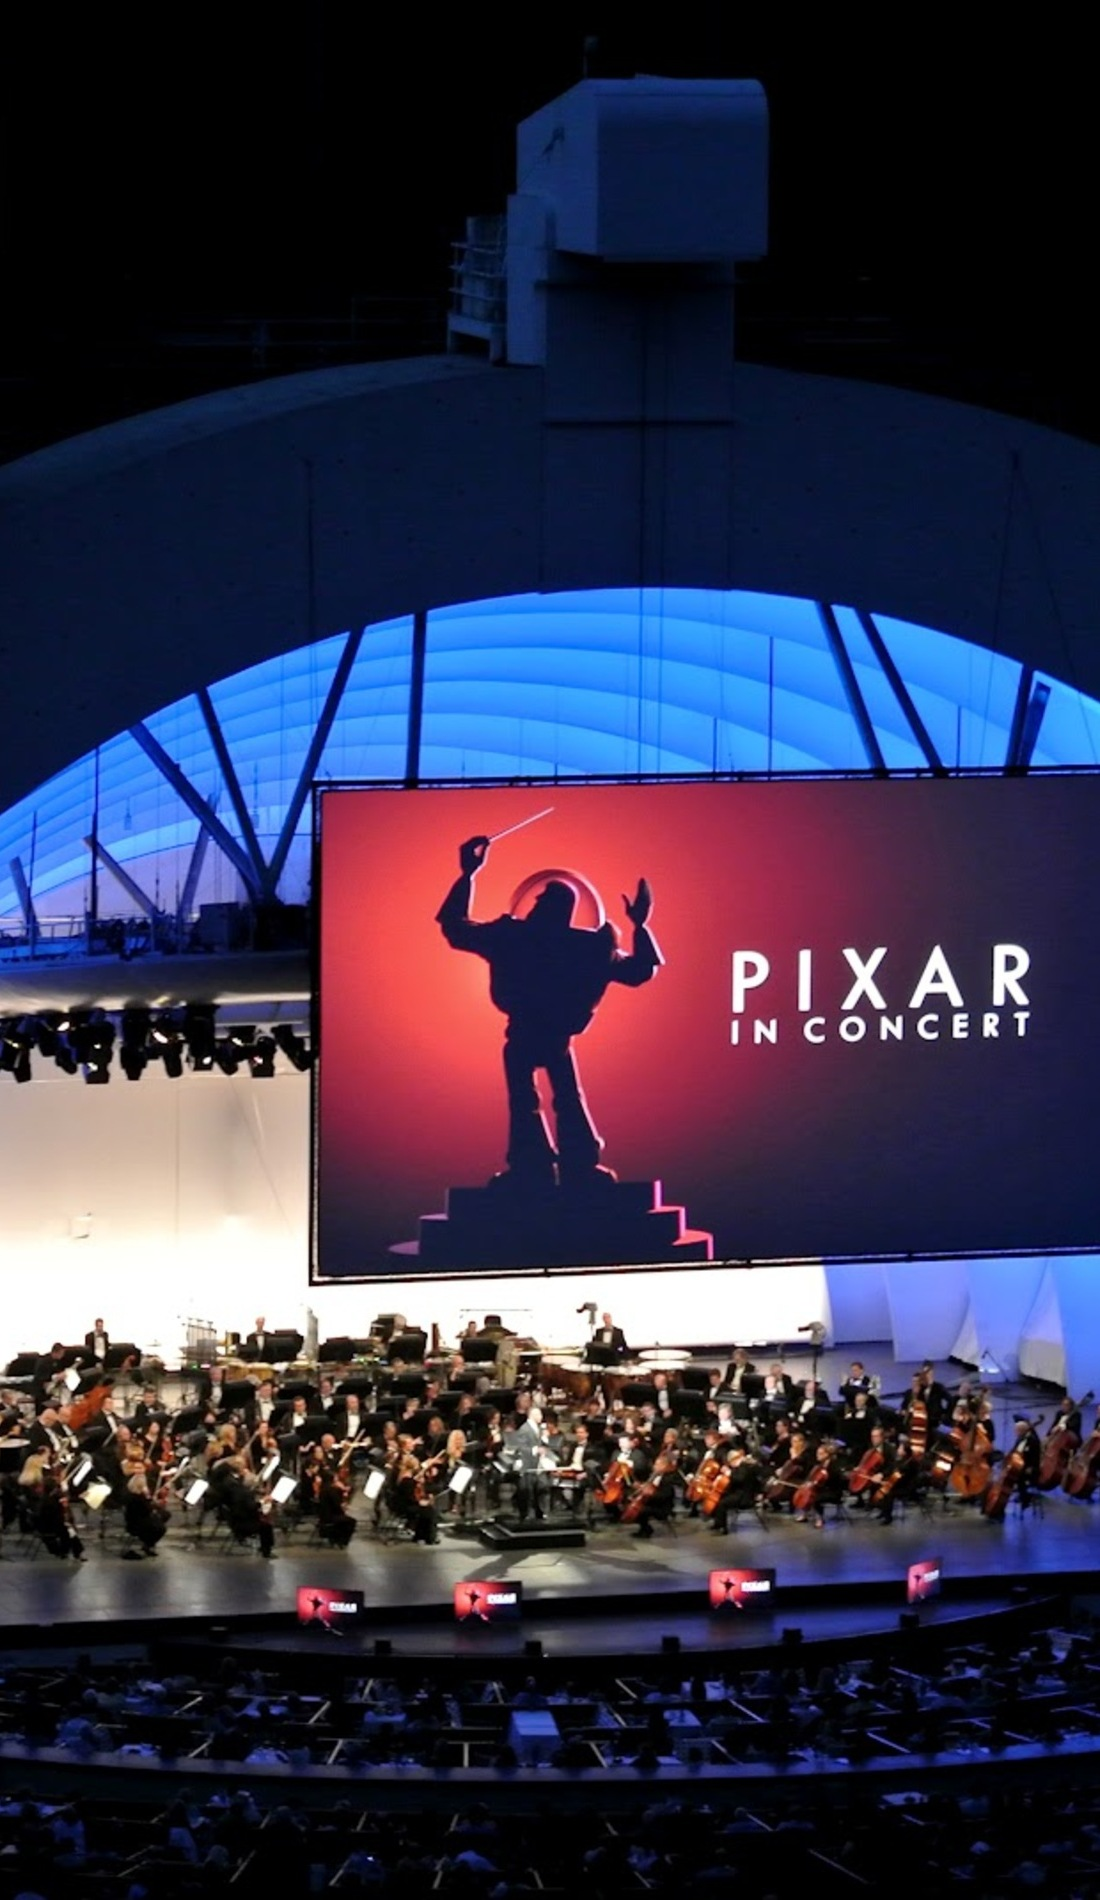 A Pixar In Concert live event